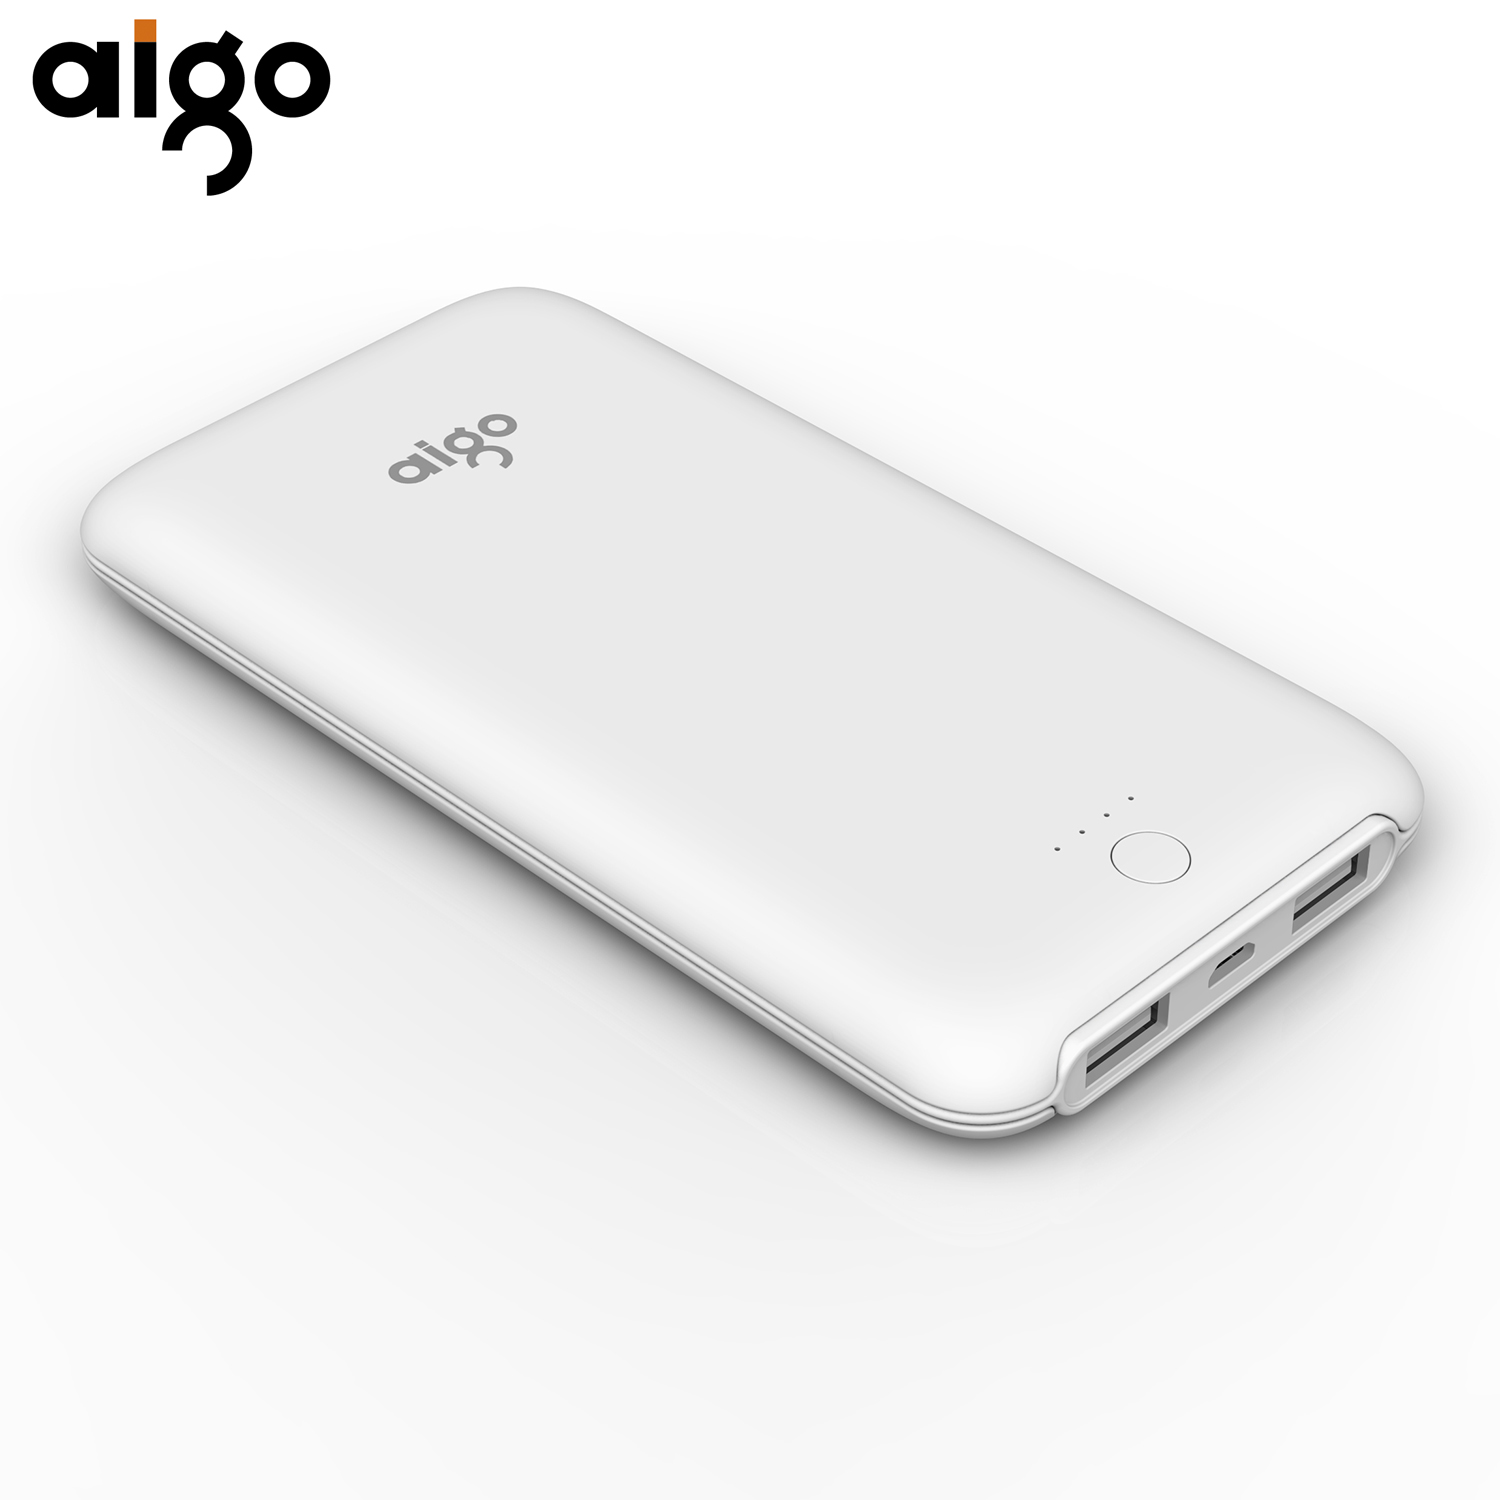 AIGO Power Bank 10000MAH Full Capacity T10000 Dual USB Portable Charger External Battery Pack Super Thin Power Supply Powerbank(China (Mainland))